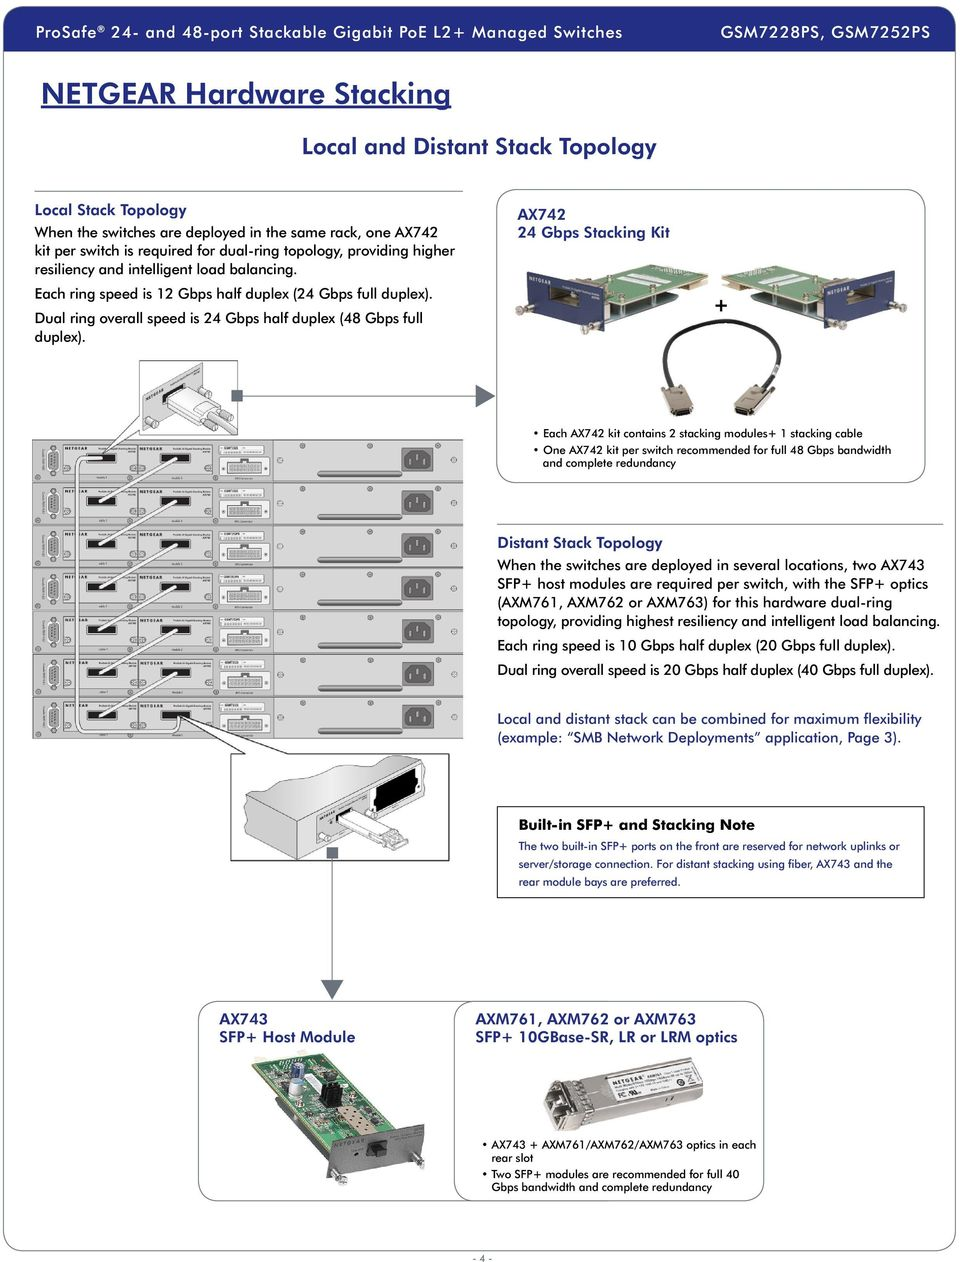 AX742 24 Gbps Stacking Kit + Each AX742 kit contains 2 stacking modules+ 1 stacking cable One AX742 kit per switch recommended for full 48 Gbps bandwidth and complete redundancy Distant Stack